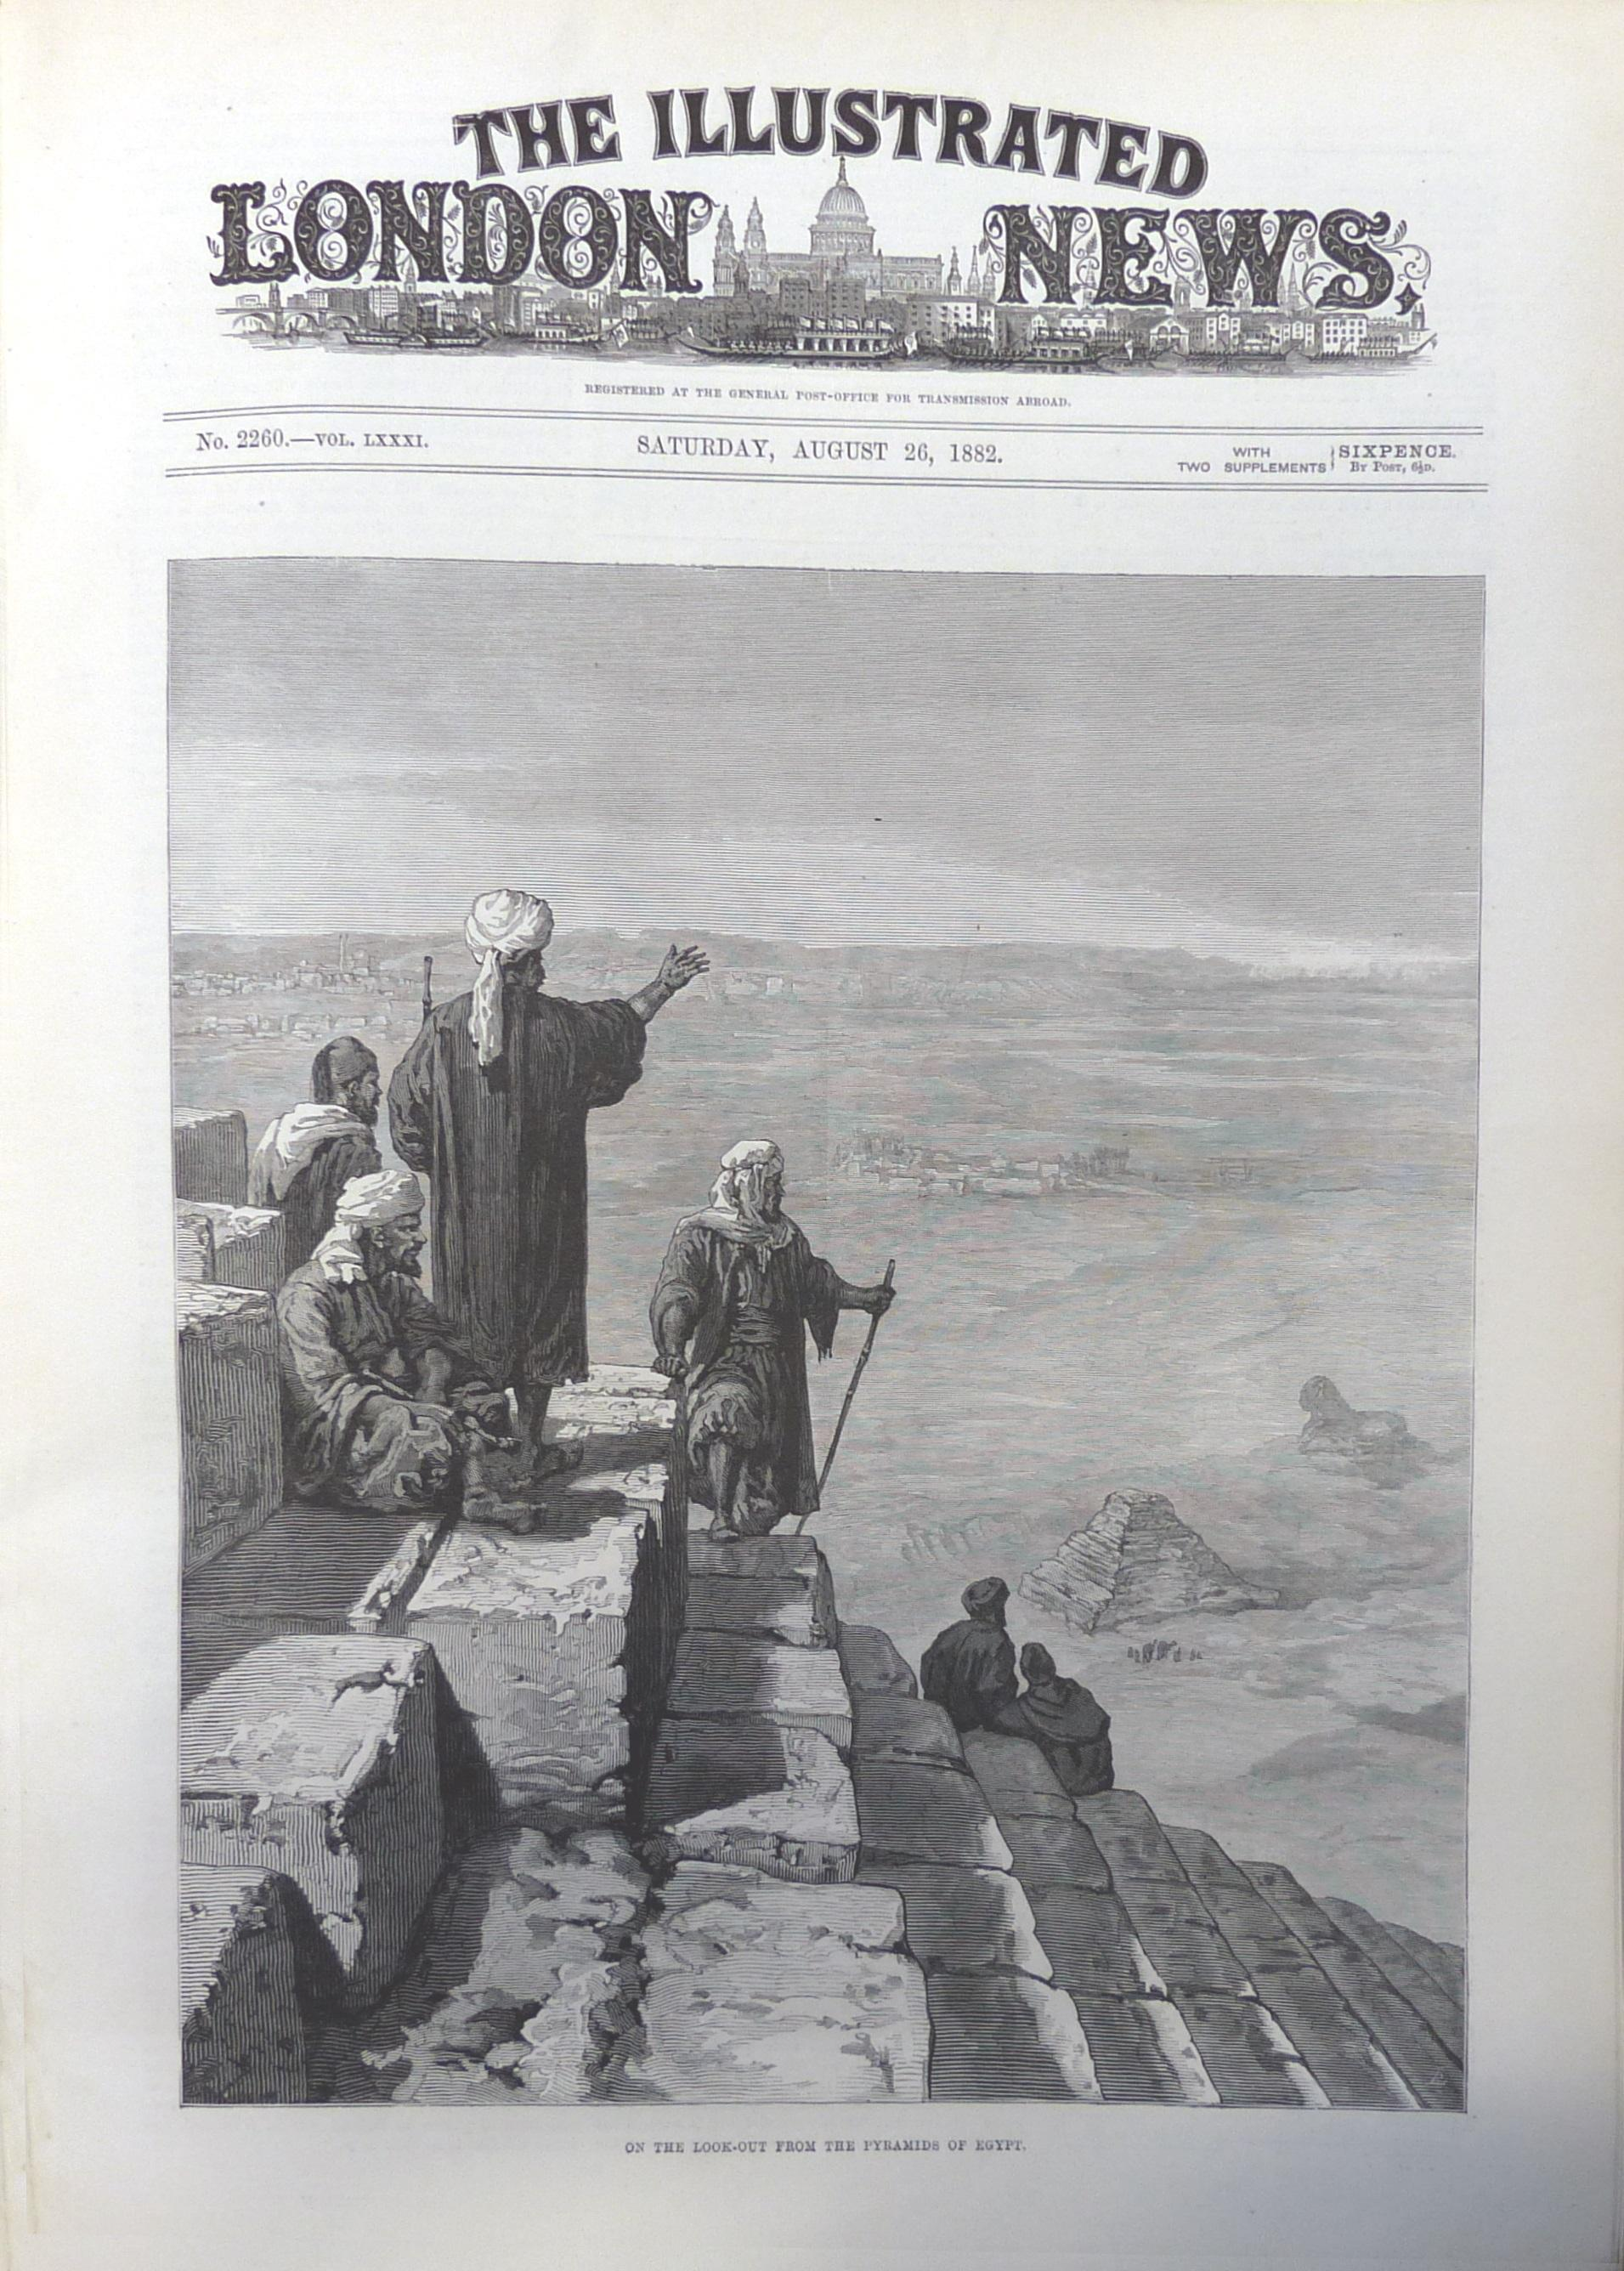 'On the look-out from the pyramids of Egypt'. The Illustrated London News vol. 81, no. 2260, 26 August 1882, p. 213. CUL NPR.c.313.